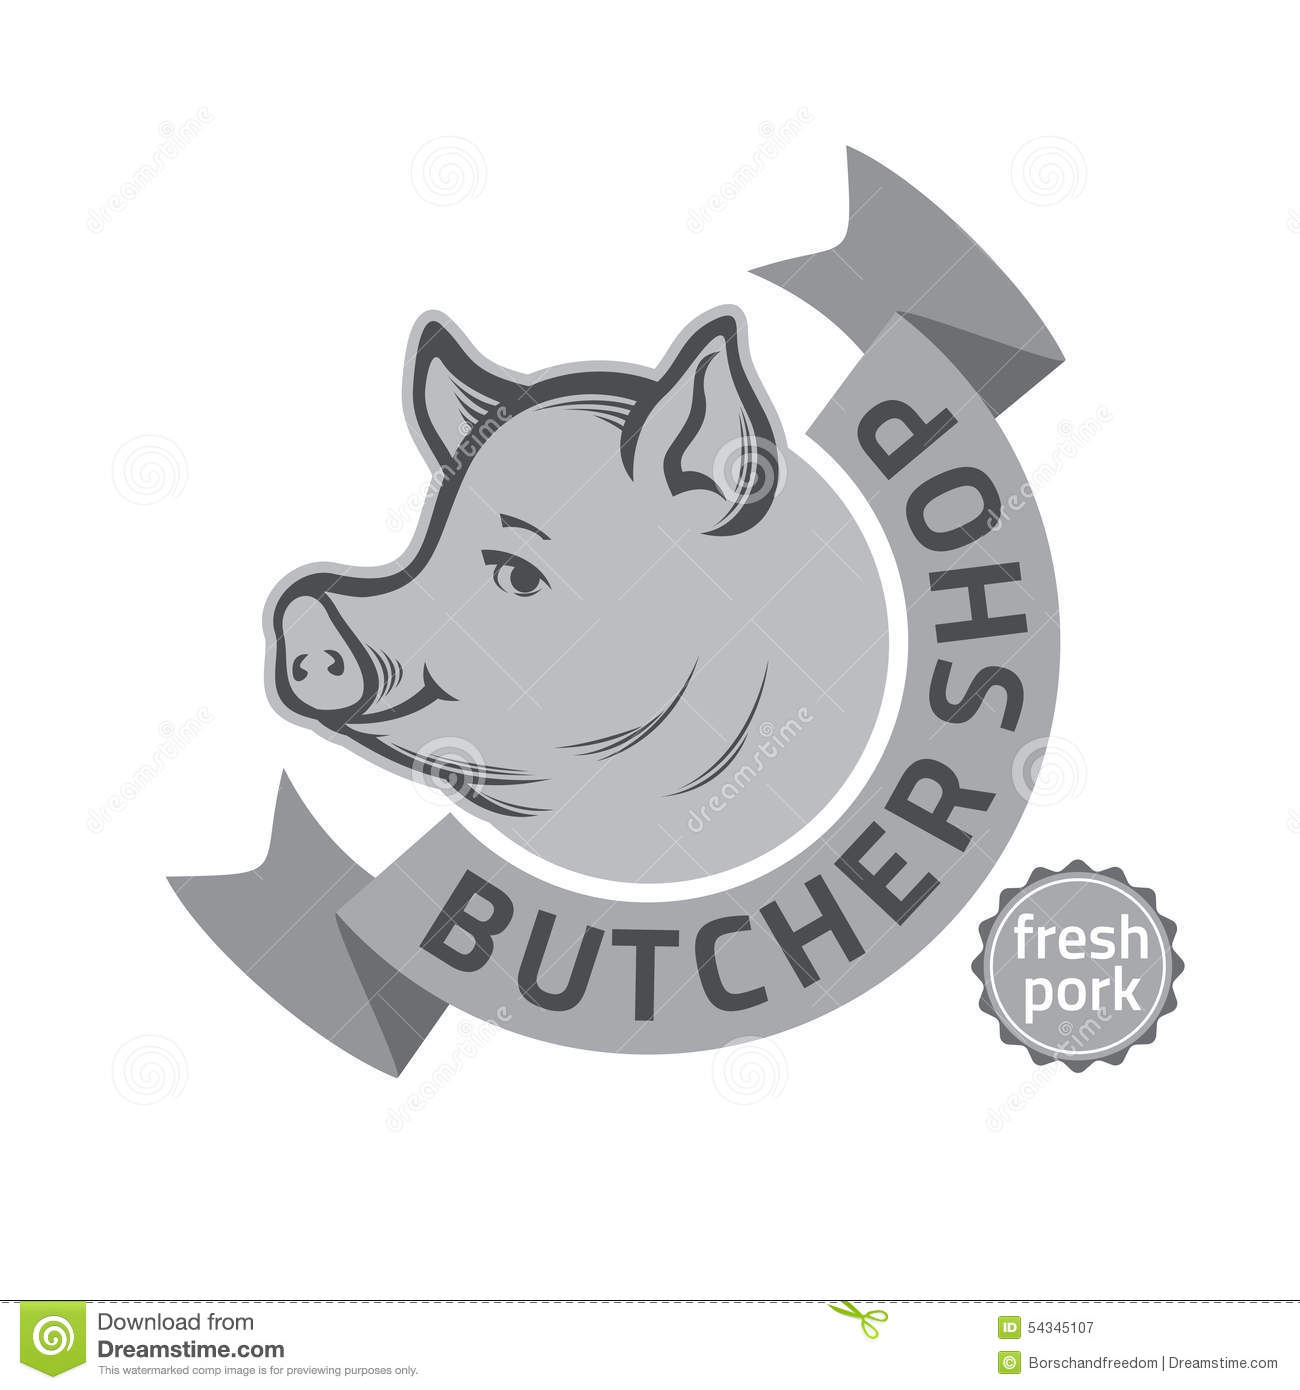 butcher shop logo stock vector image 54345107